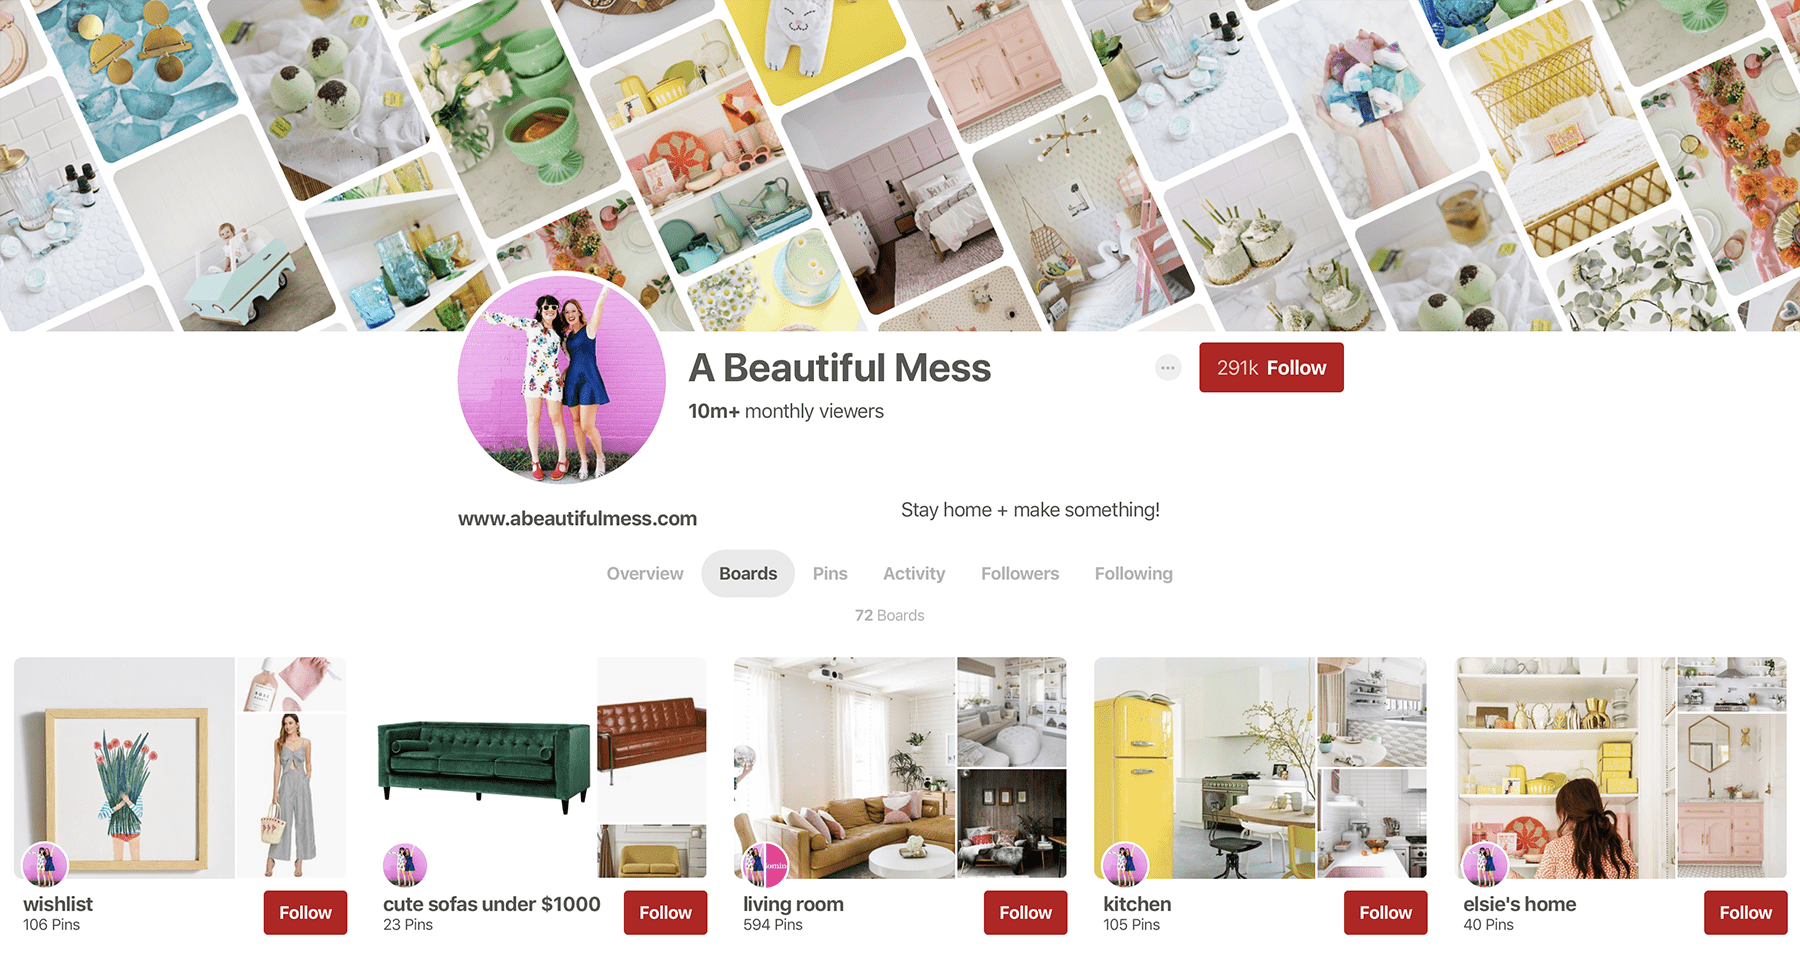 Our Top Pinterest Strategies - A Beautiful Mess